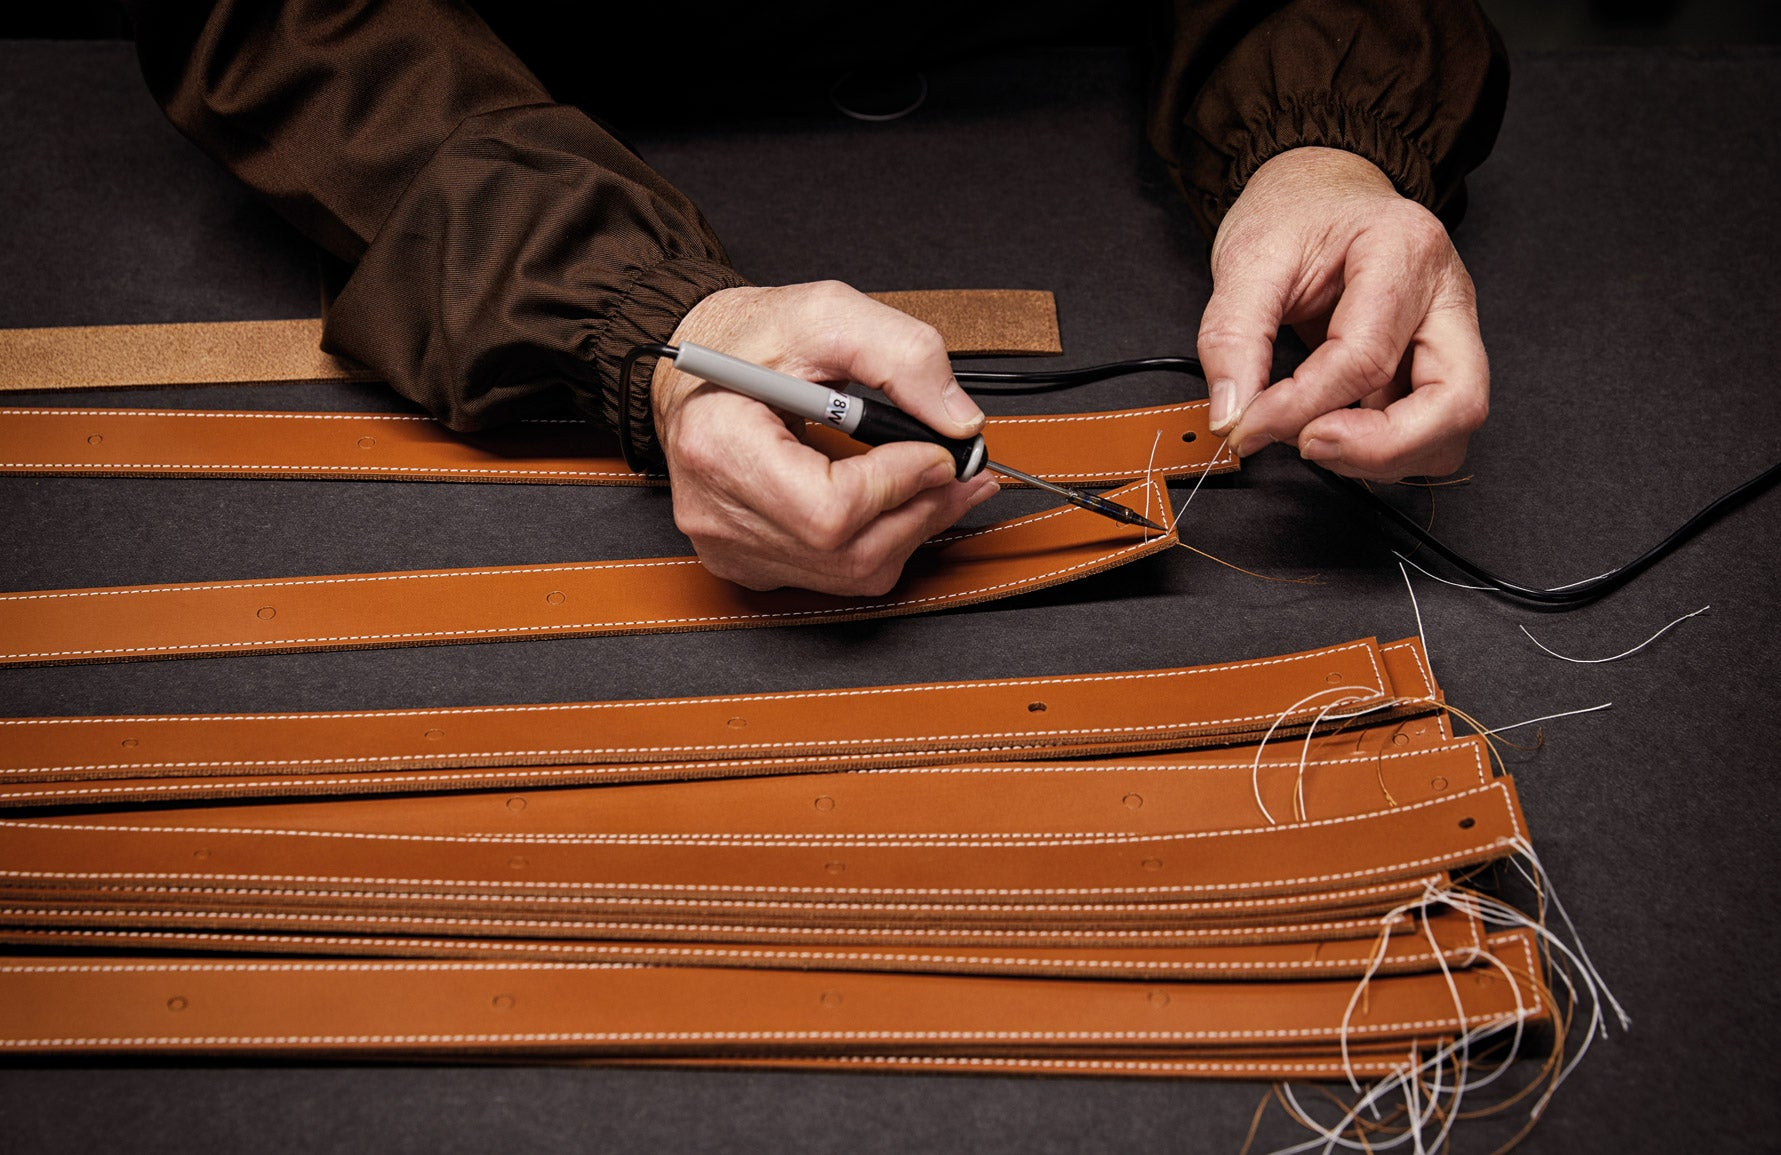 Behind The Brand | Pinetti | Italian Leather Craftsmanship | Read more in The Luxurist at LuxDeco.com